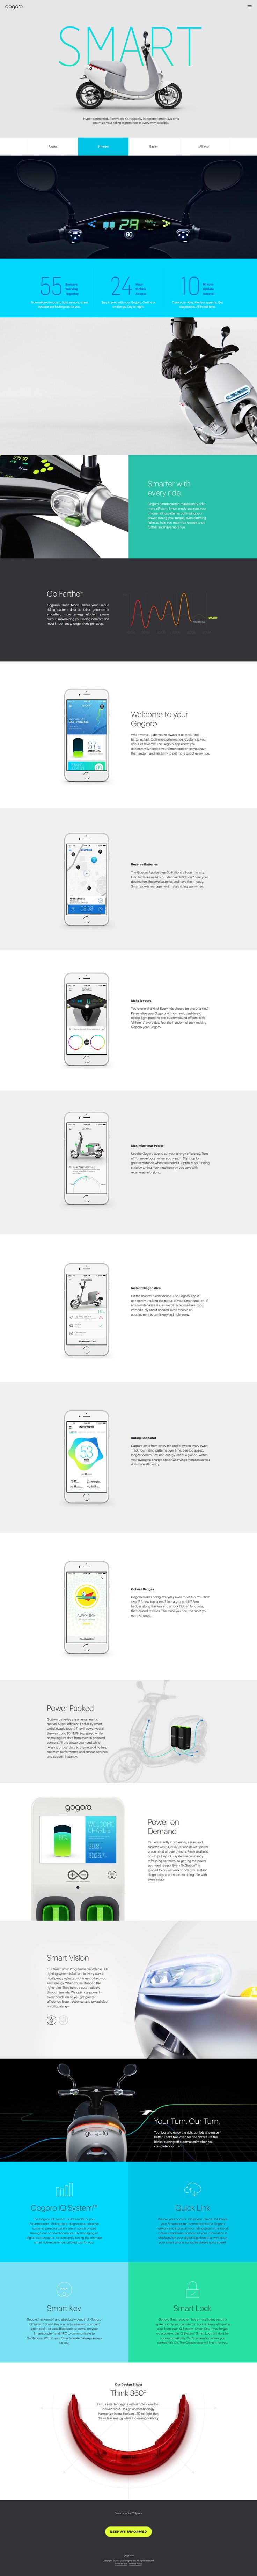 Very nice design. Haven't seen such a great web design for a product recently. Has a couple of UX flaws though.